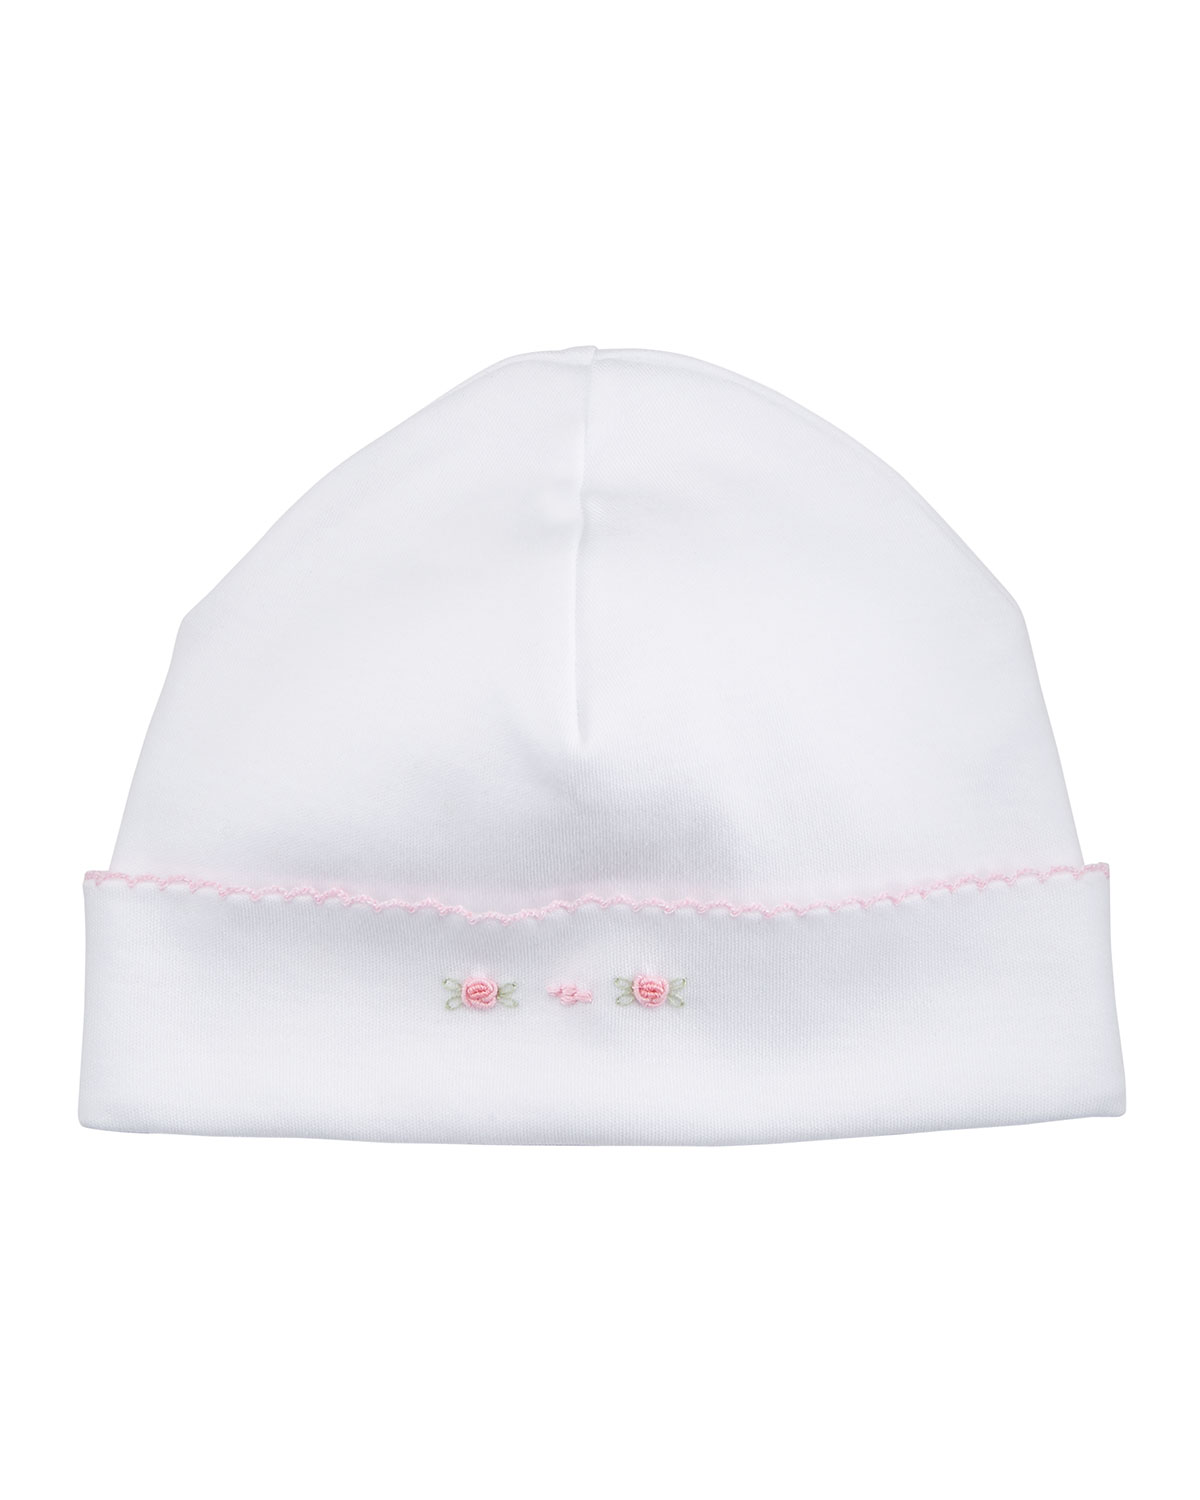 CLB Fall Bishop Baby Hat